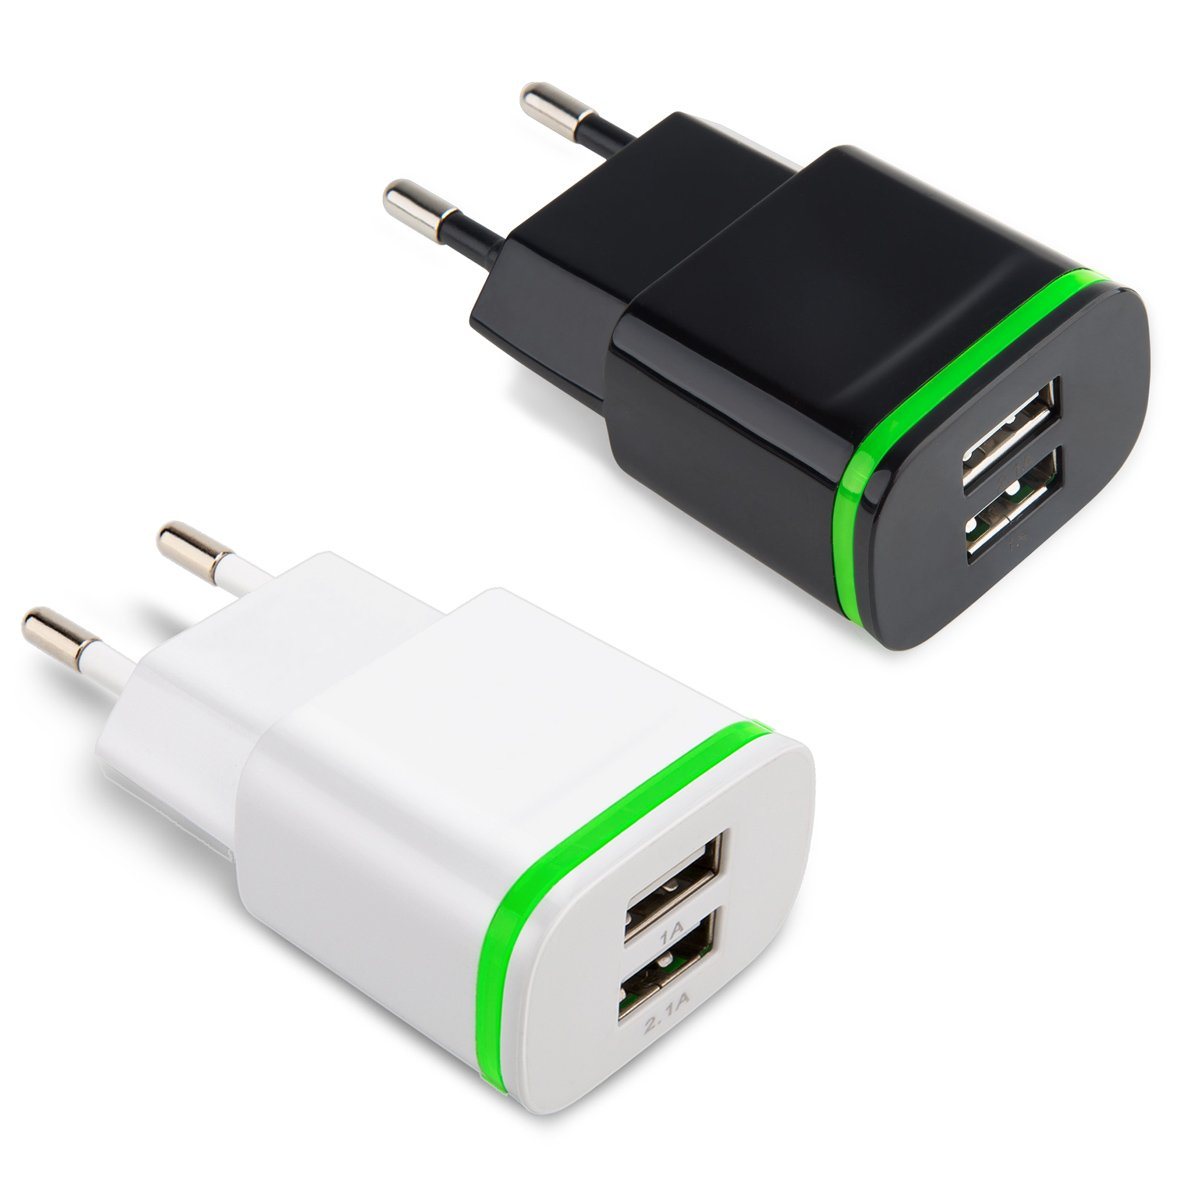 European Travel Charger, Power-7 2Pack 2.1A/5V Universal Dual Port USB Wall Charging Adapter Plug with LED Light for iPhone 7 Plus 6S 5S, Samsung Galaxy S8/Plus S7/S6 Edge, Tab, LG, HTC, Android Phone